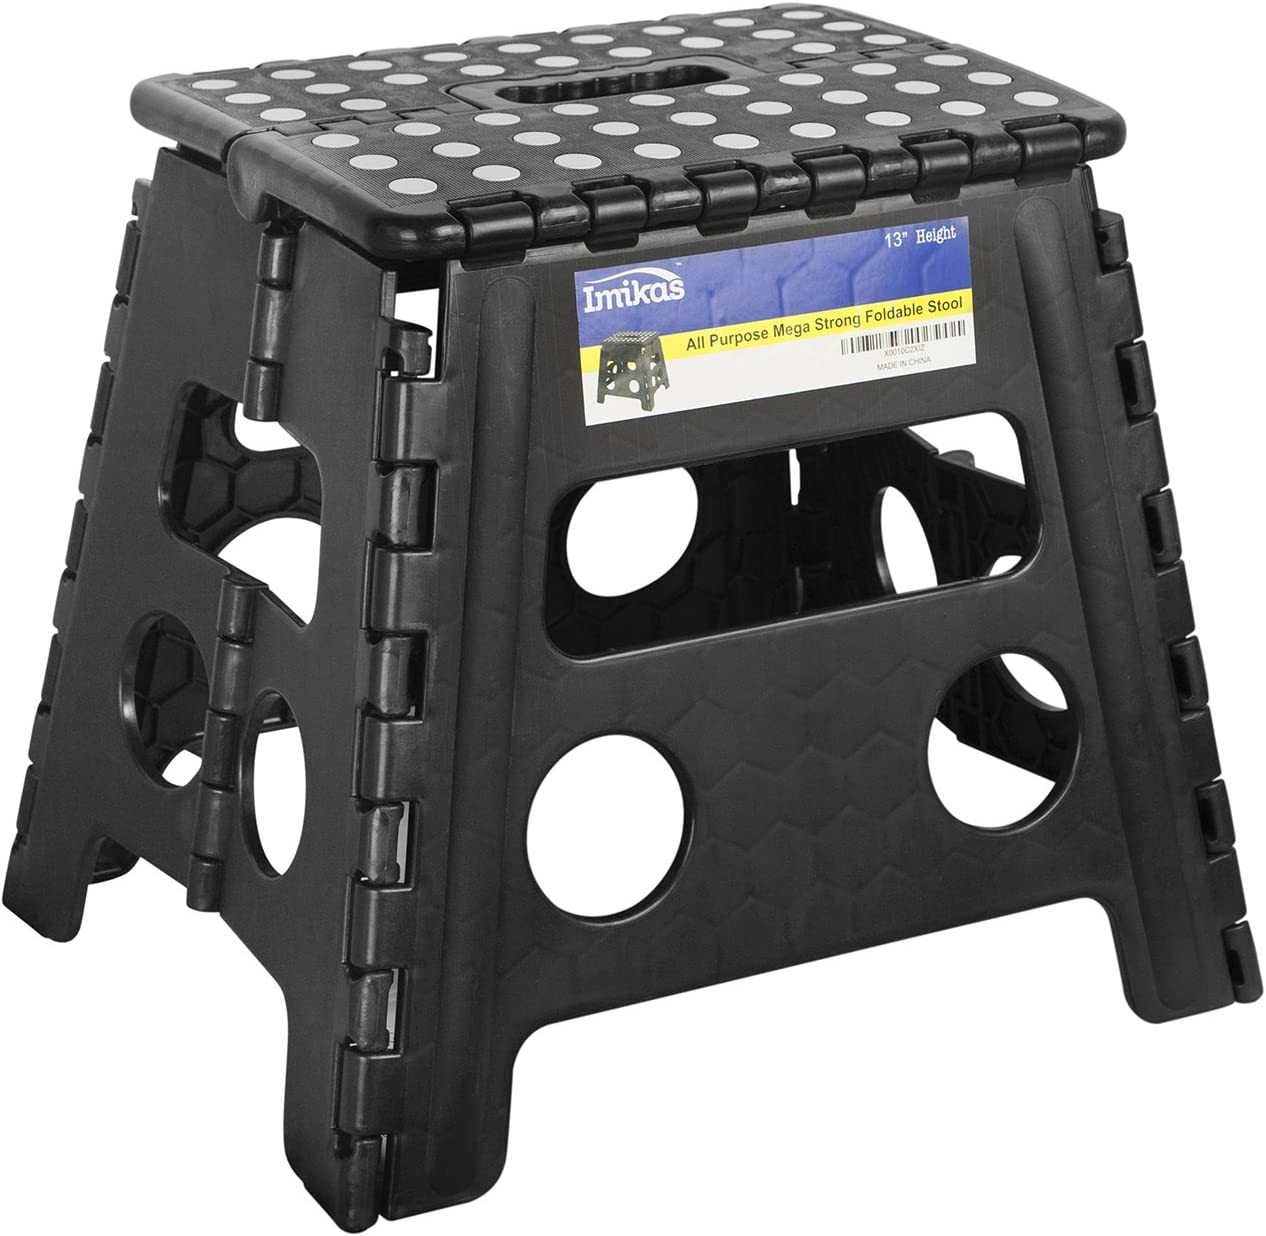 Large - Black Kitchen Garden Bathroom Collapsible Stepping Stool Folding Step Stool Foldable Stool for Kids /& Adults